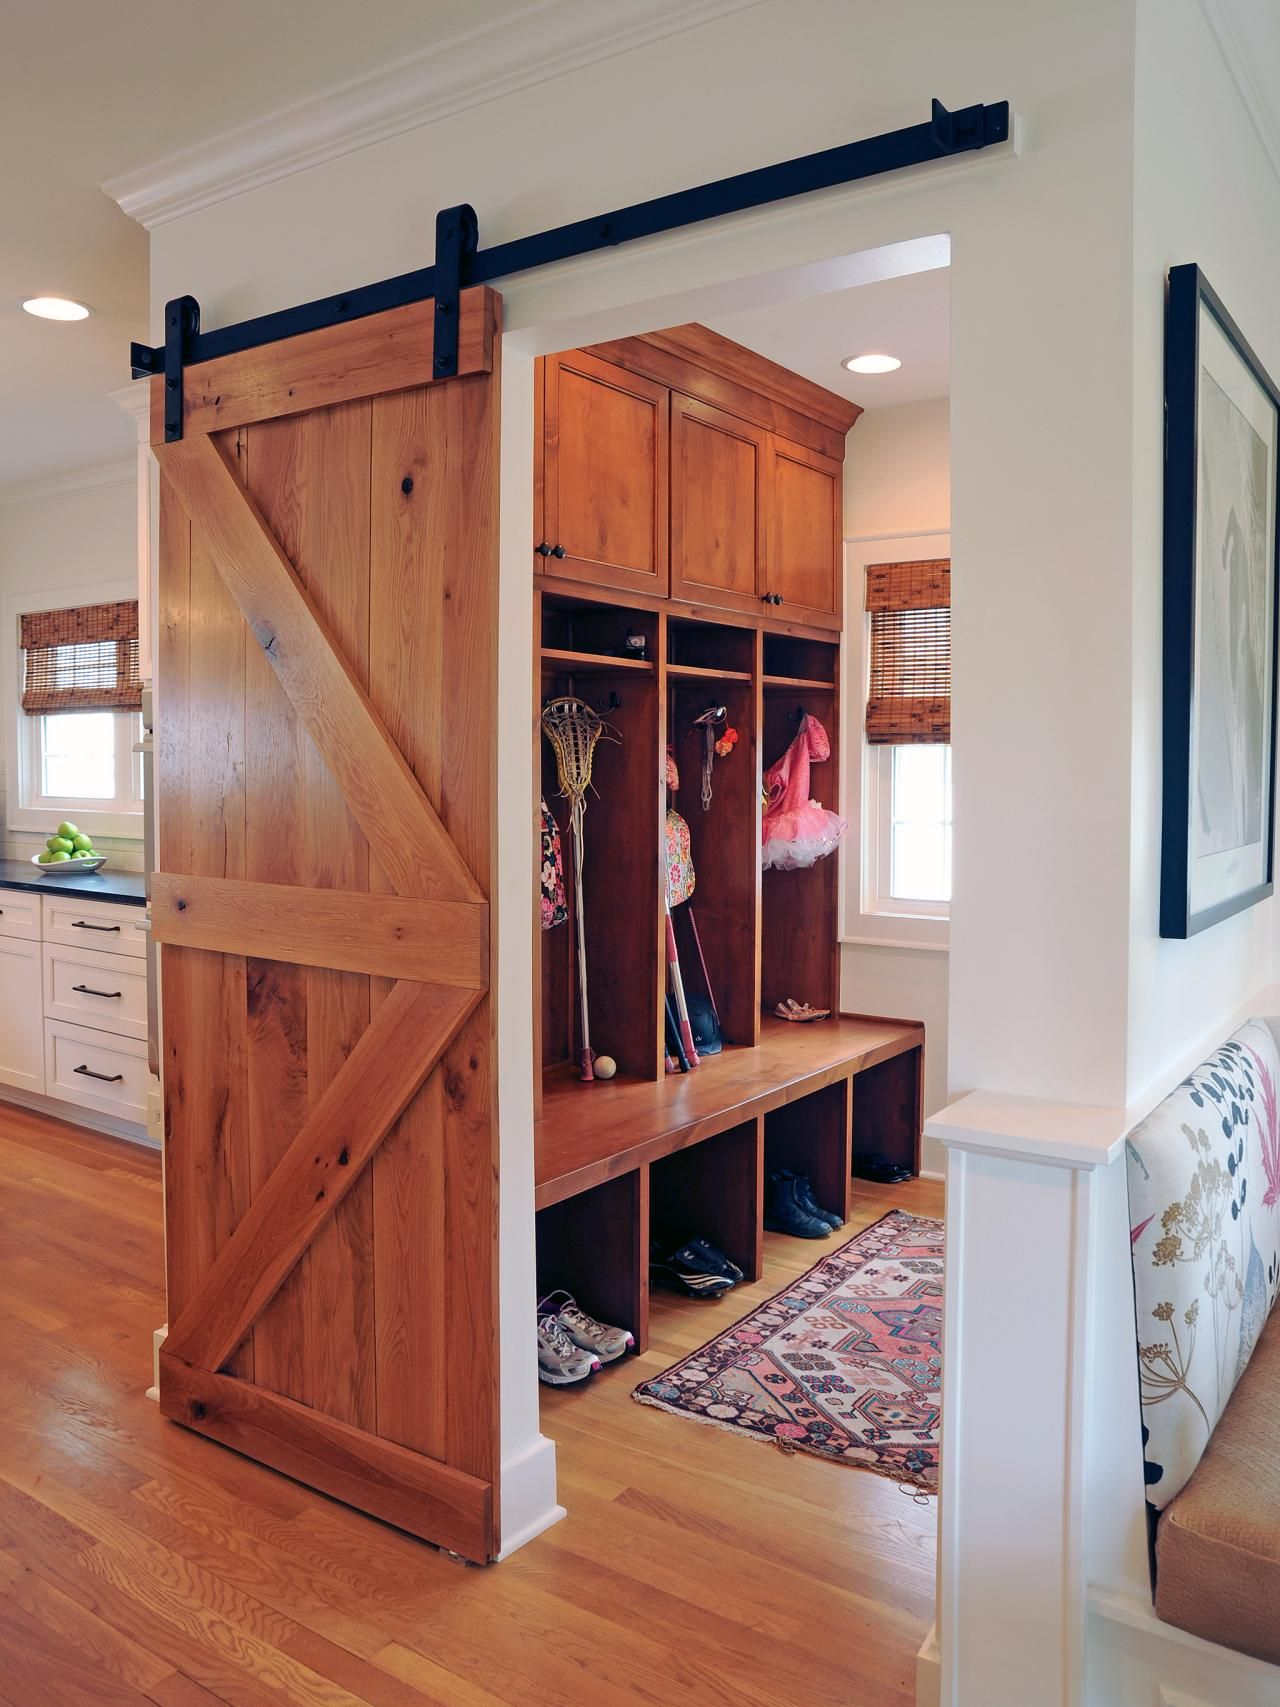 The 50 Hottest Pinterest Photos Home Remodeling Ideas